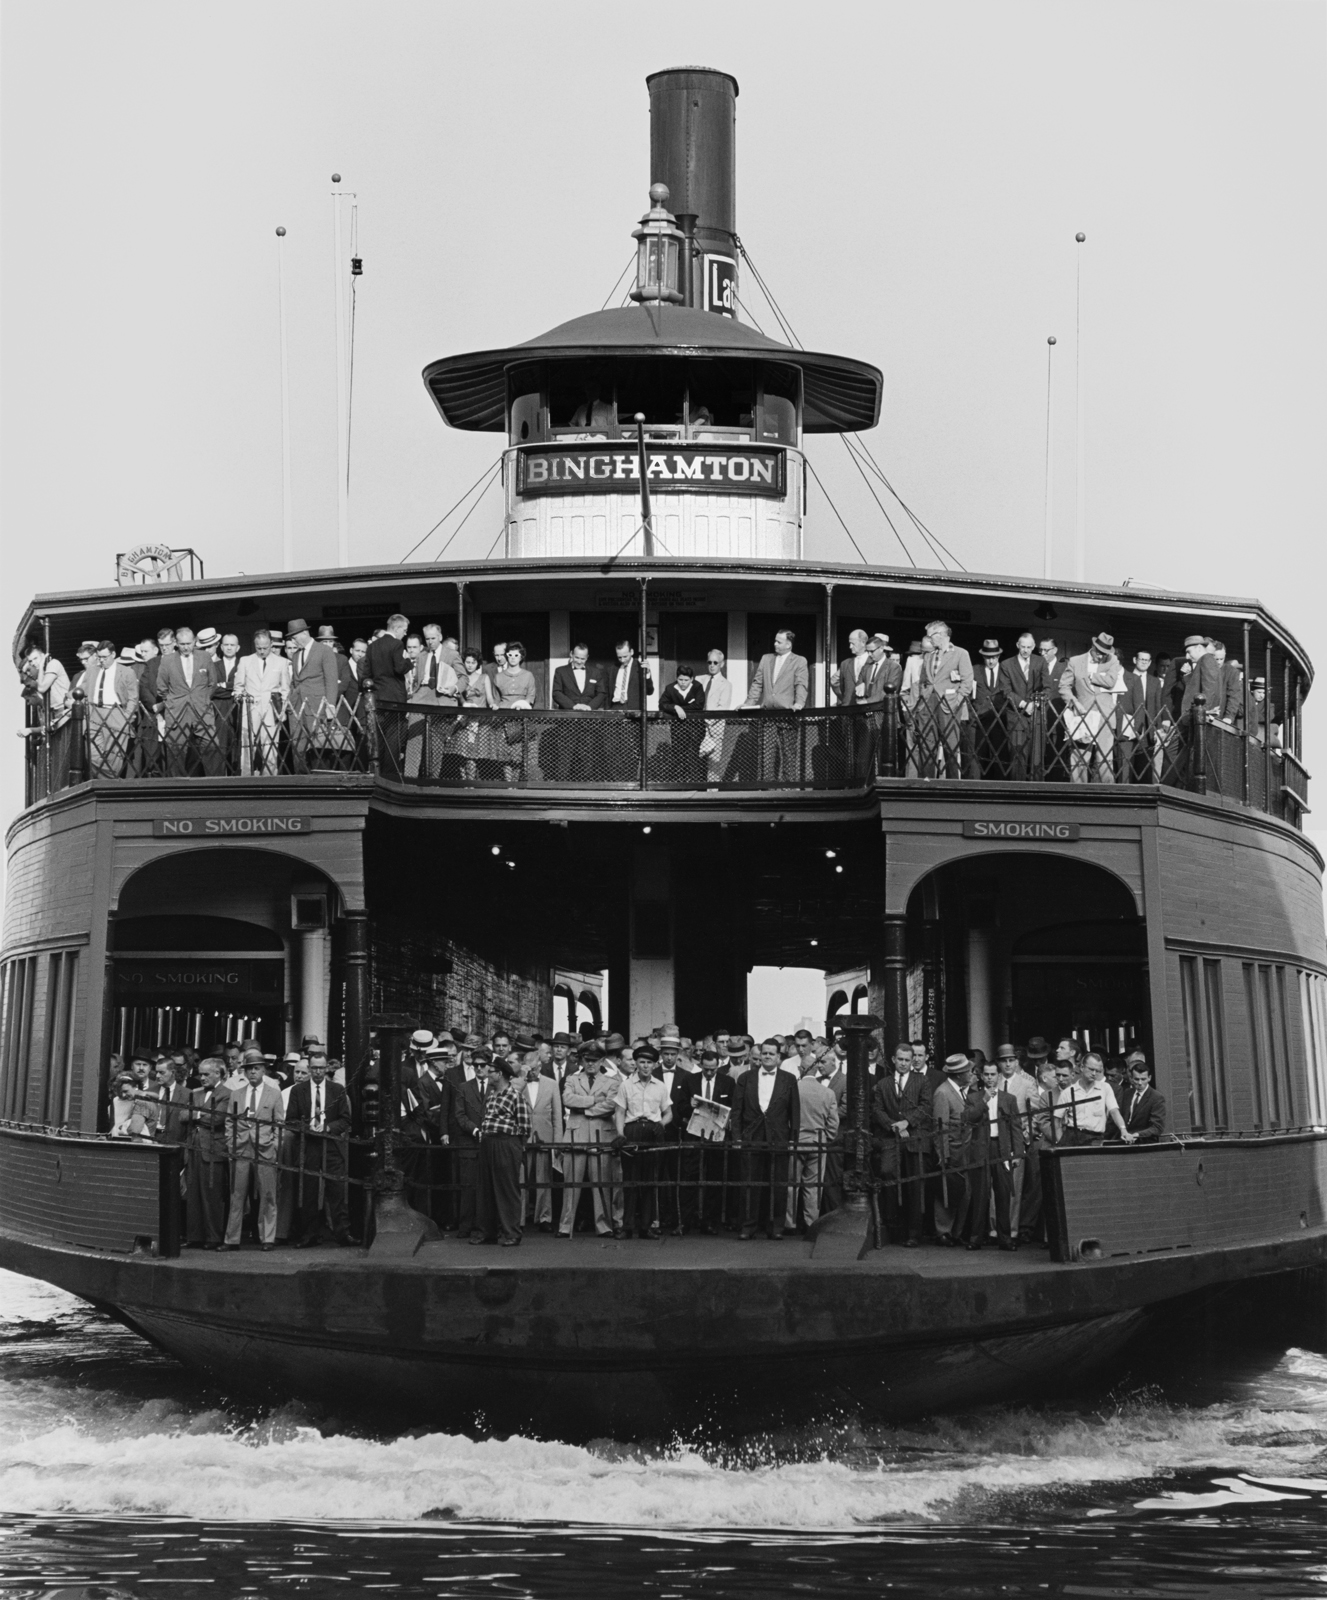 Ferryboat Binghamton, Barclay St. Terminal, New York, New Yourk, 1961